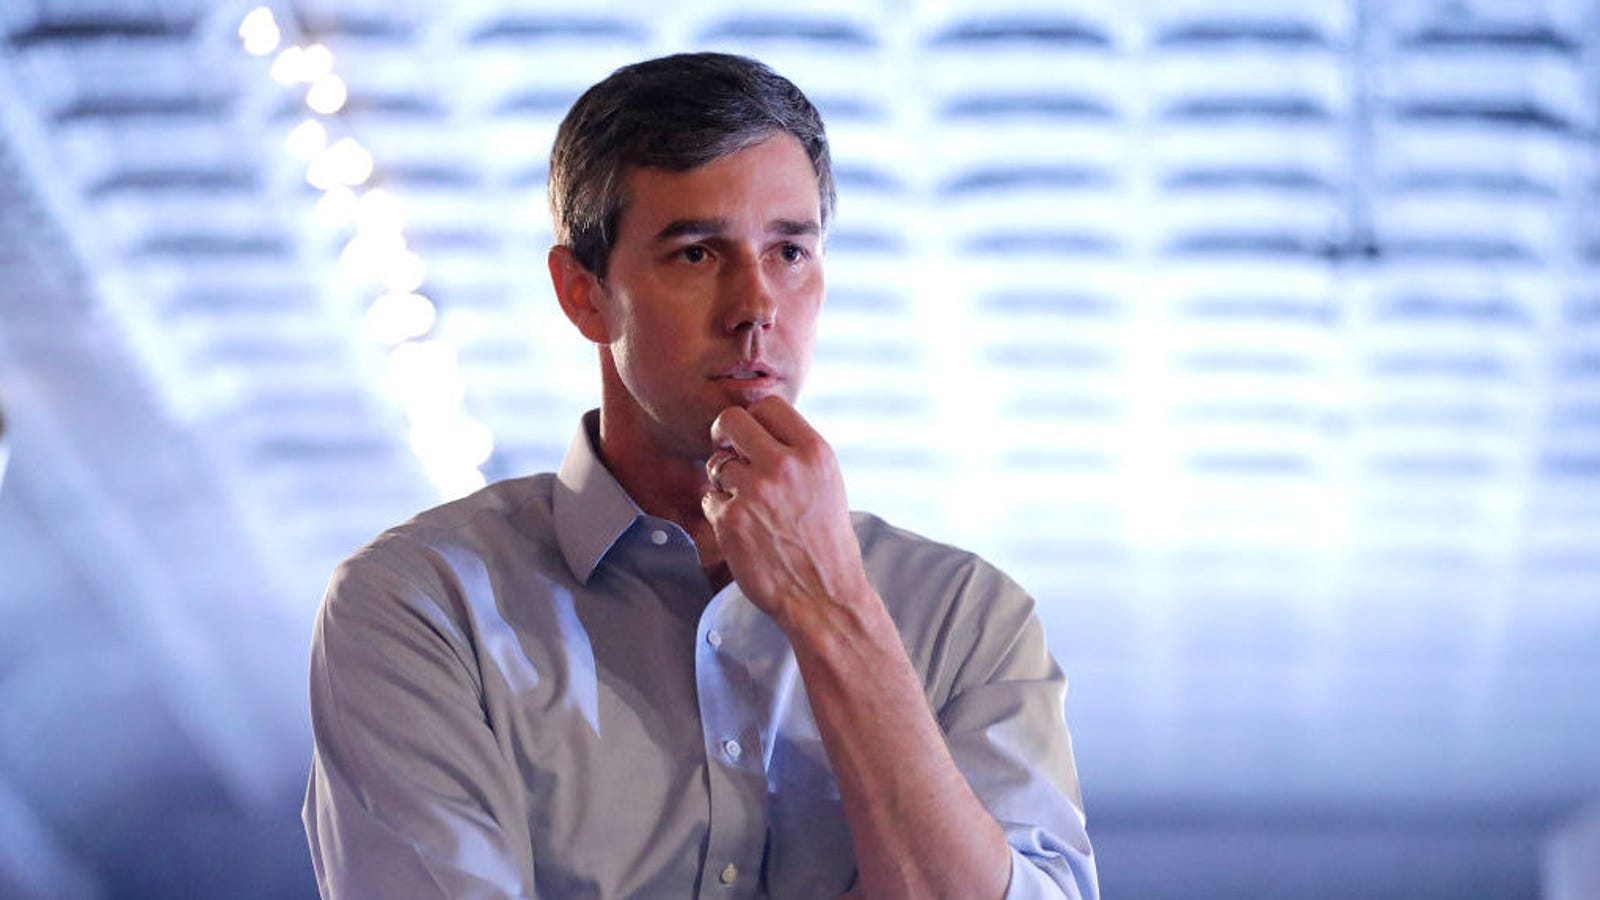 photo of If You Pirated a Copy of Photoshop, You're as Much a 'Hacker' as Beto O'Rourke  image